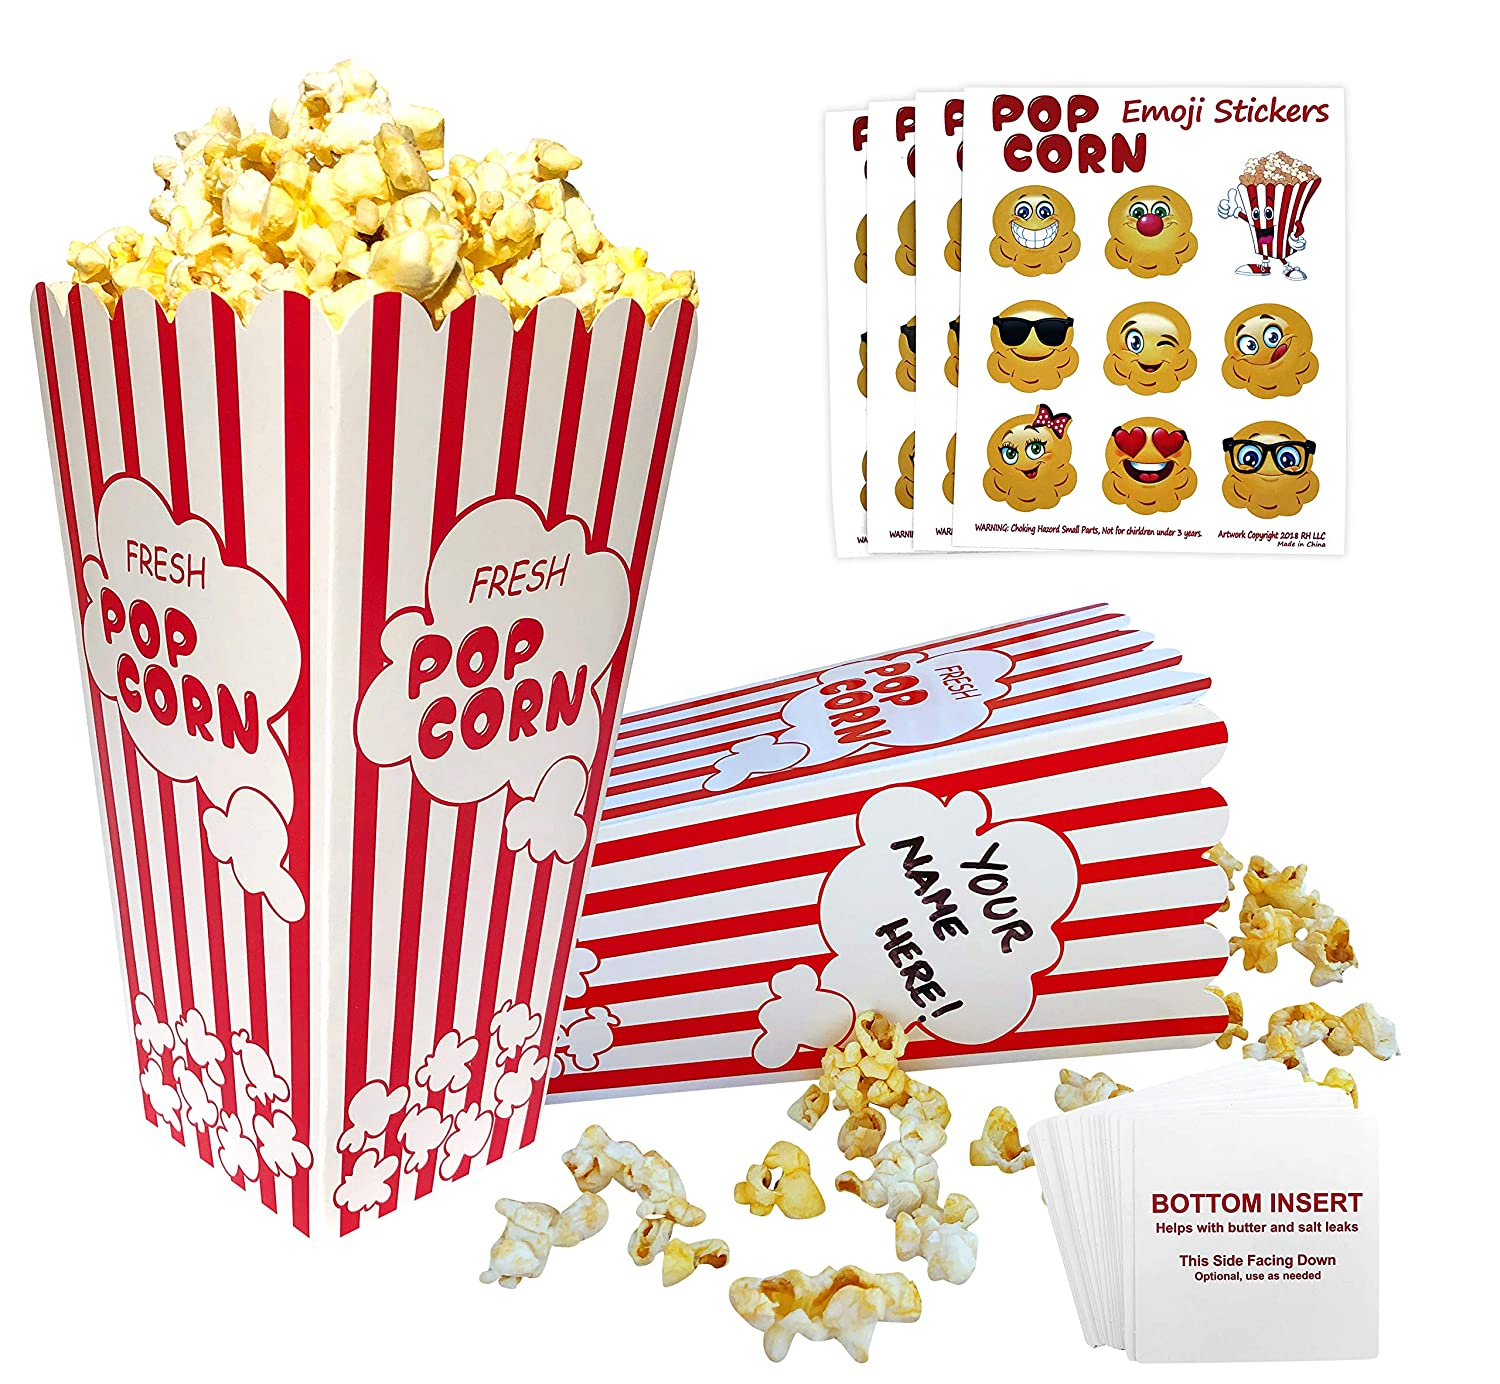 ViziY Popcorn Boxes Container Holder – 32 Red and White Striped Retro Vintage Paper Movie Night Design Cup Carnival Circus Party Decorations Bottom Insert Card Helps Prevent leaks Bonus-Emoji Stickers